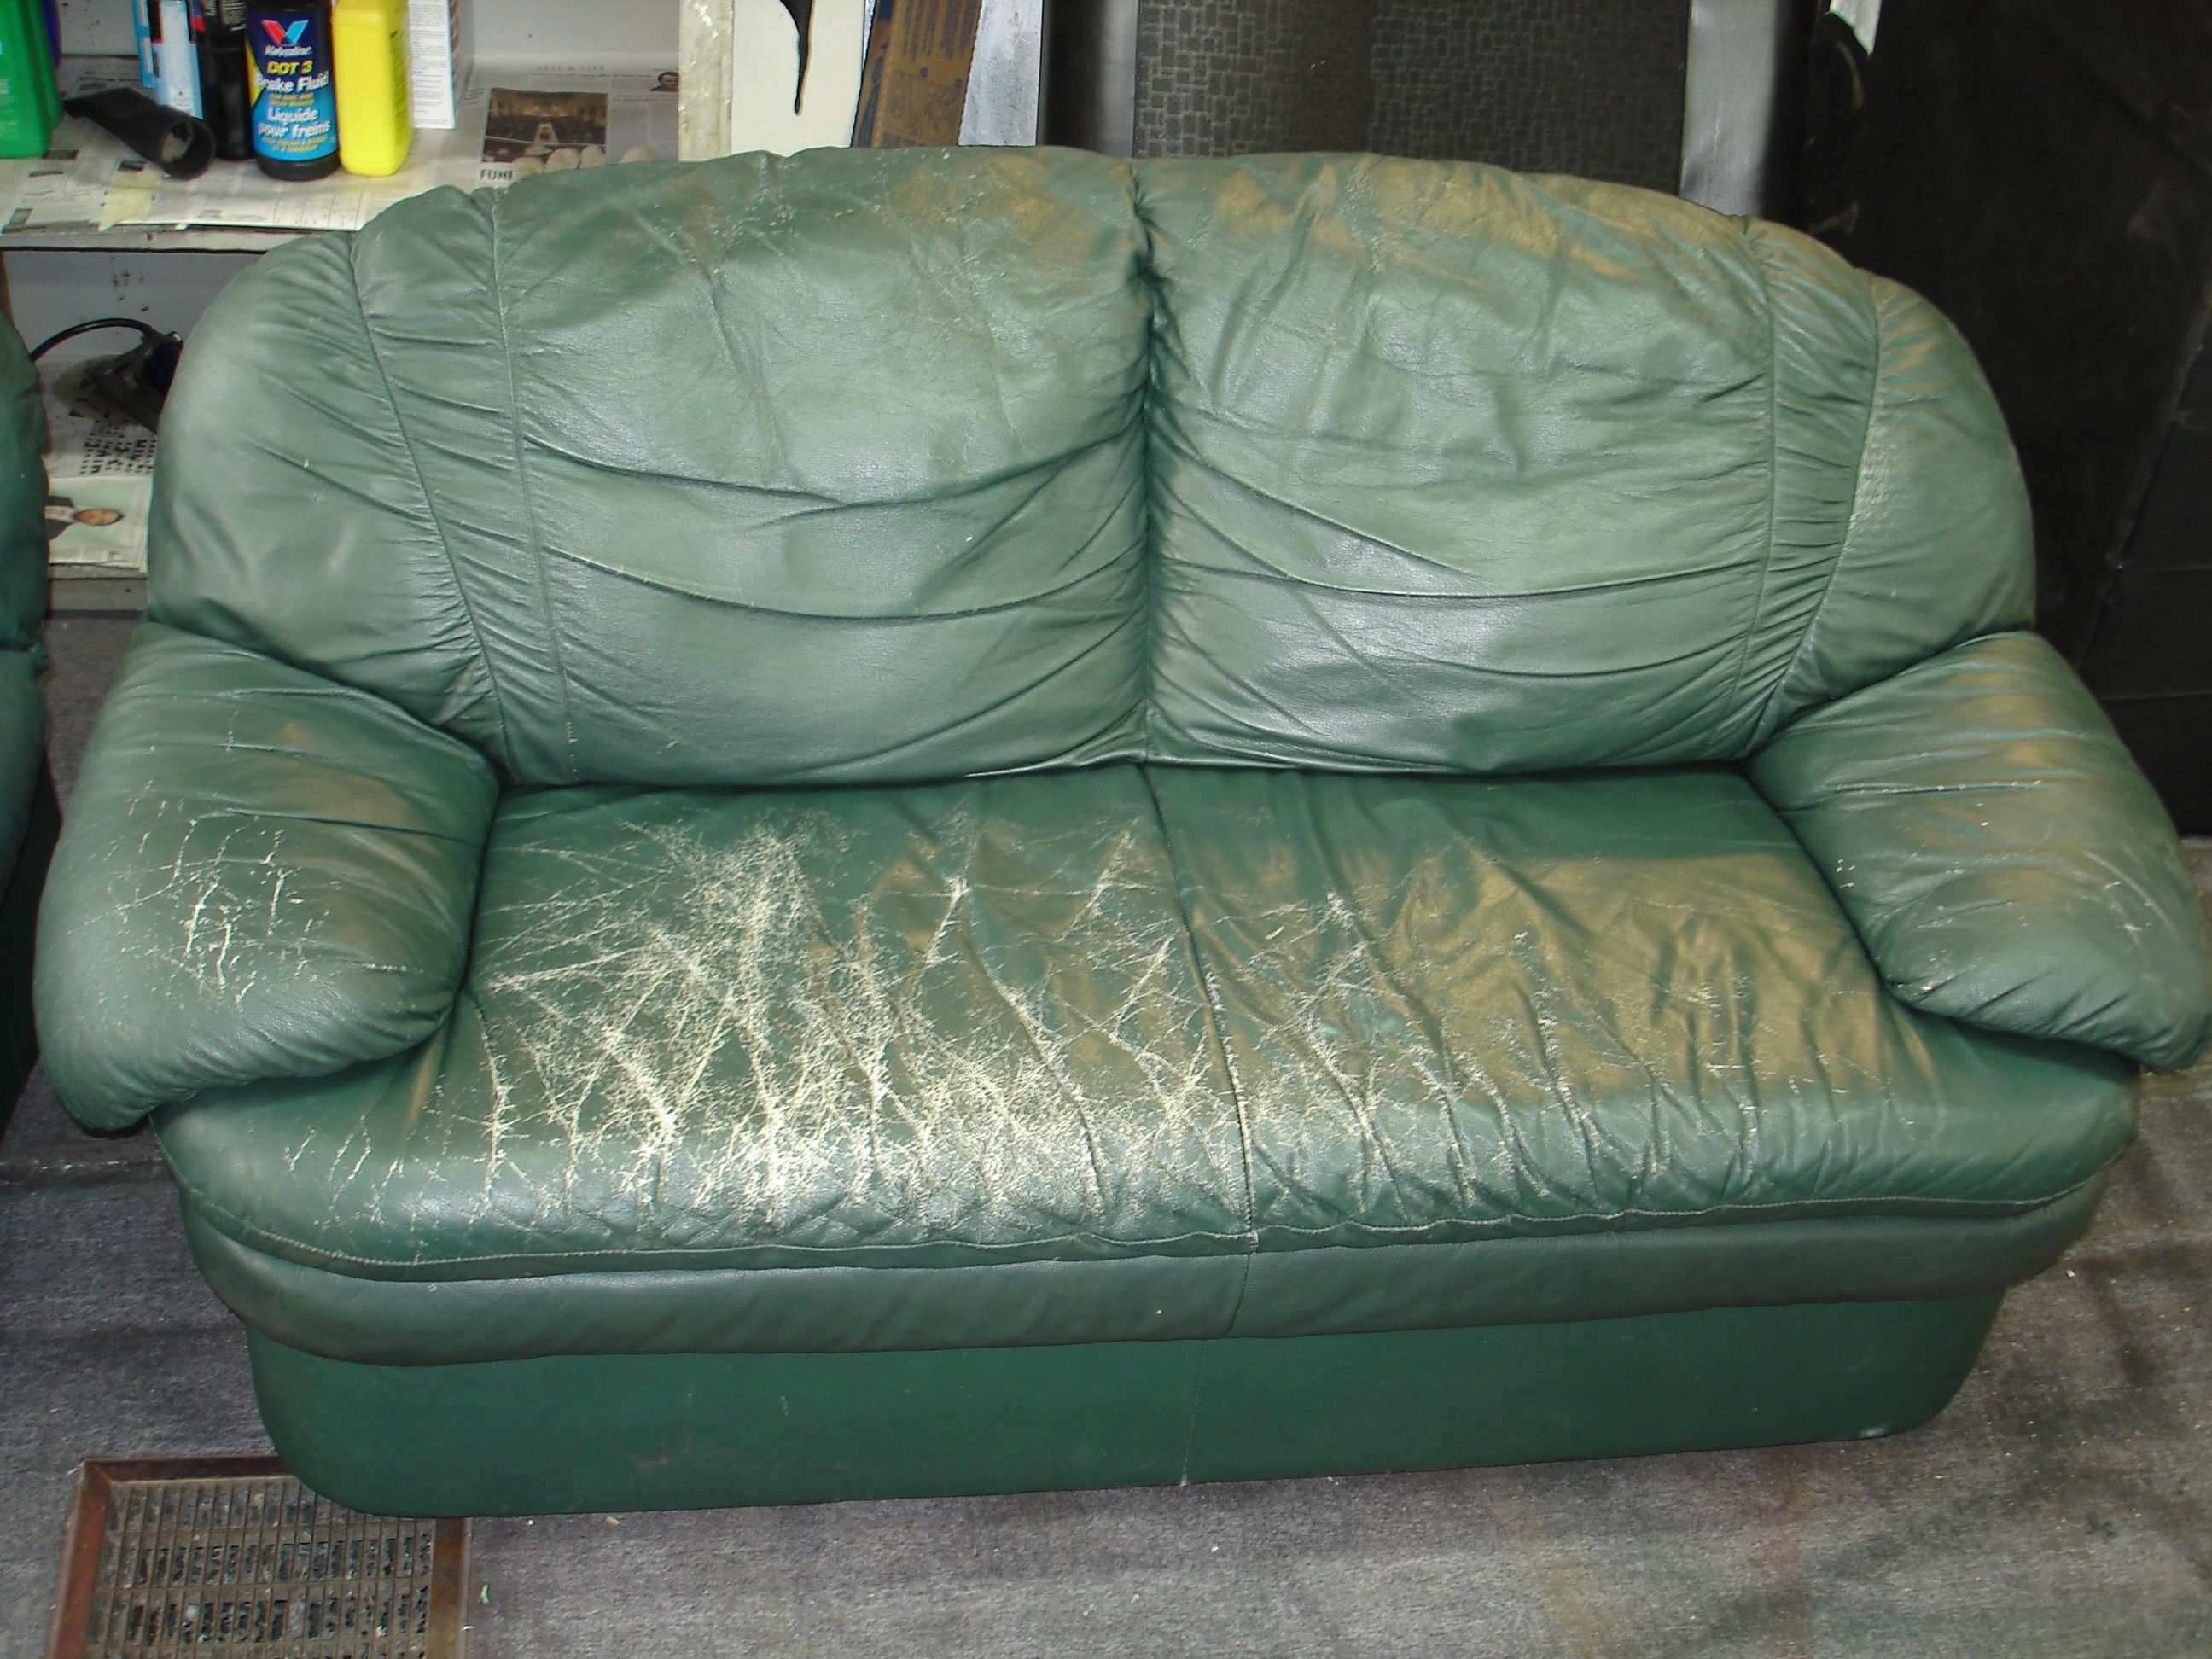 Superieur This Couch Needs Help!  Lets Clean, Repair All Cracks And Apply Our Leather